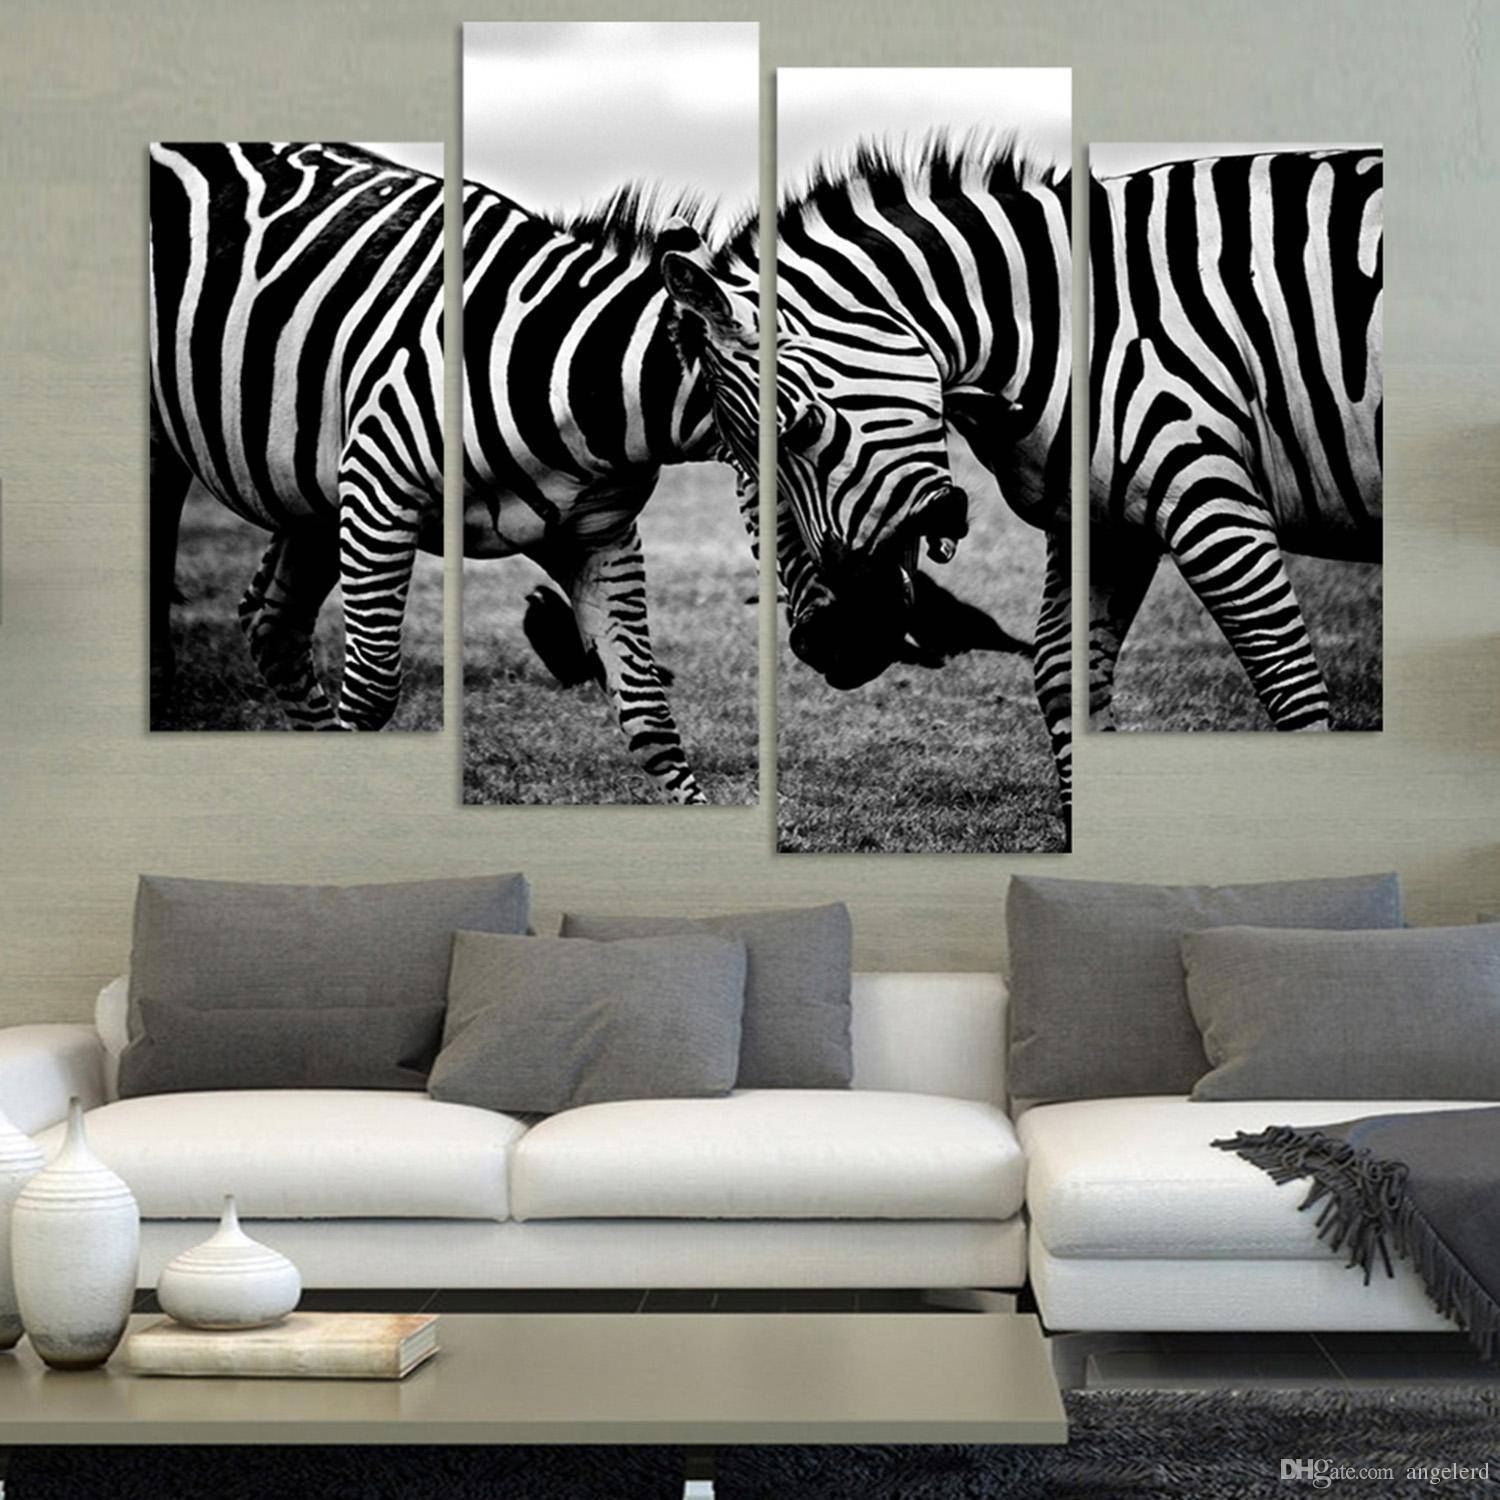 Articles With Animal Metal Wall Art Uk Tag: Animal Wall Art Pictures (View 25 of 25)